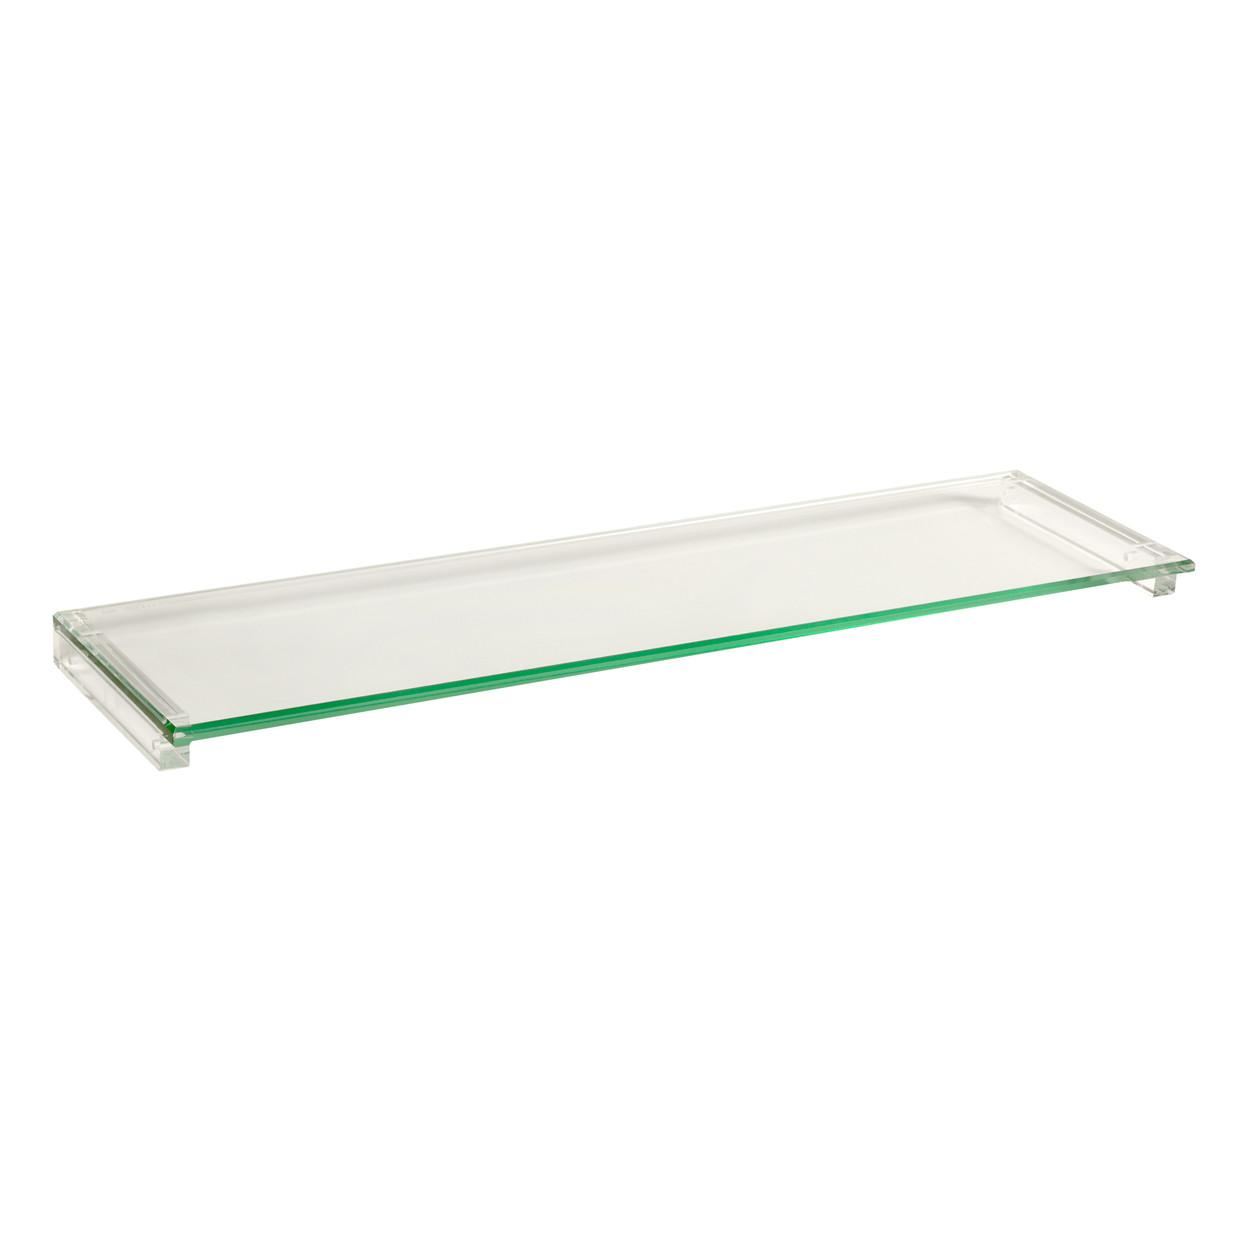 Small Tempered Glass Shelves Home Decorations Making